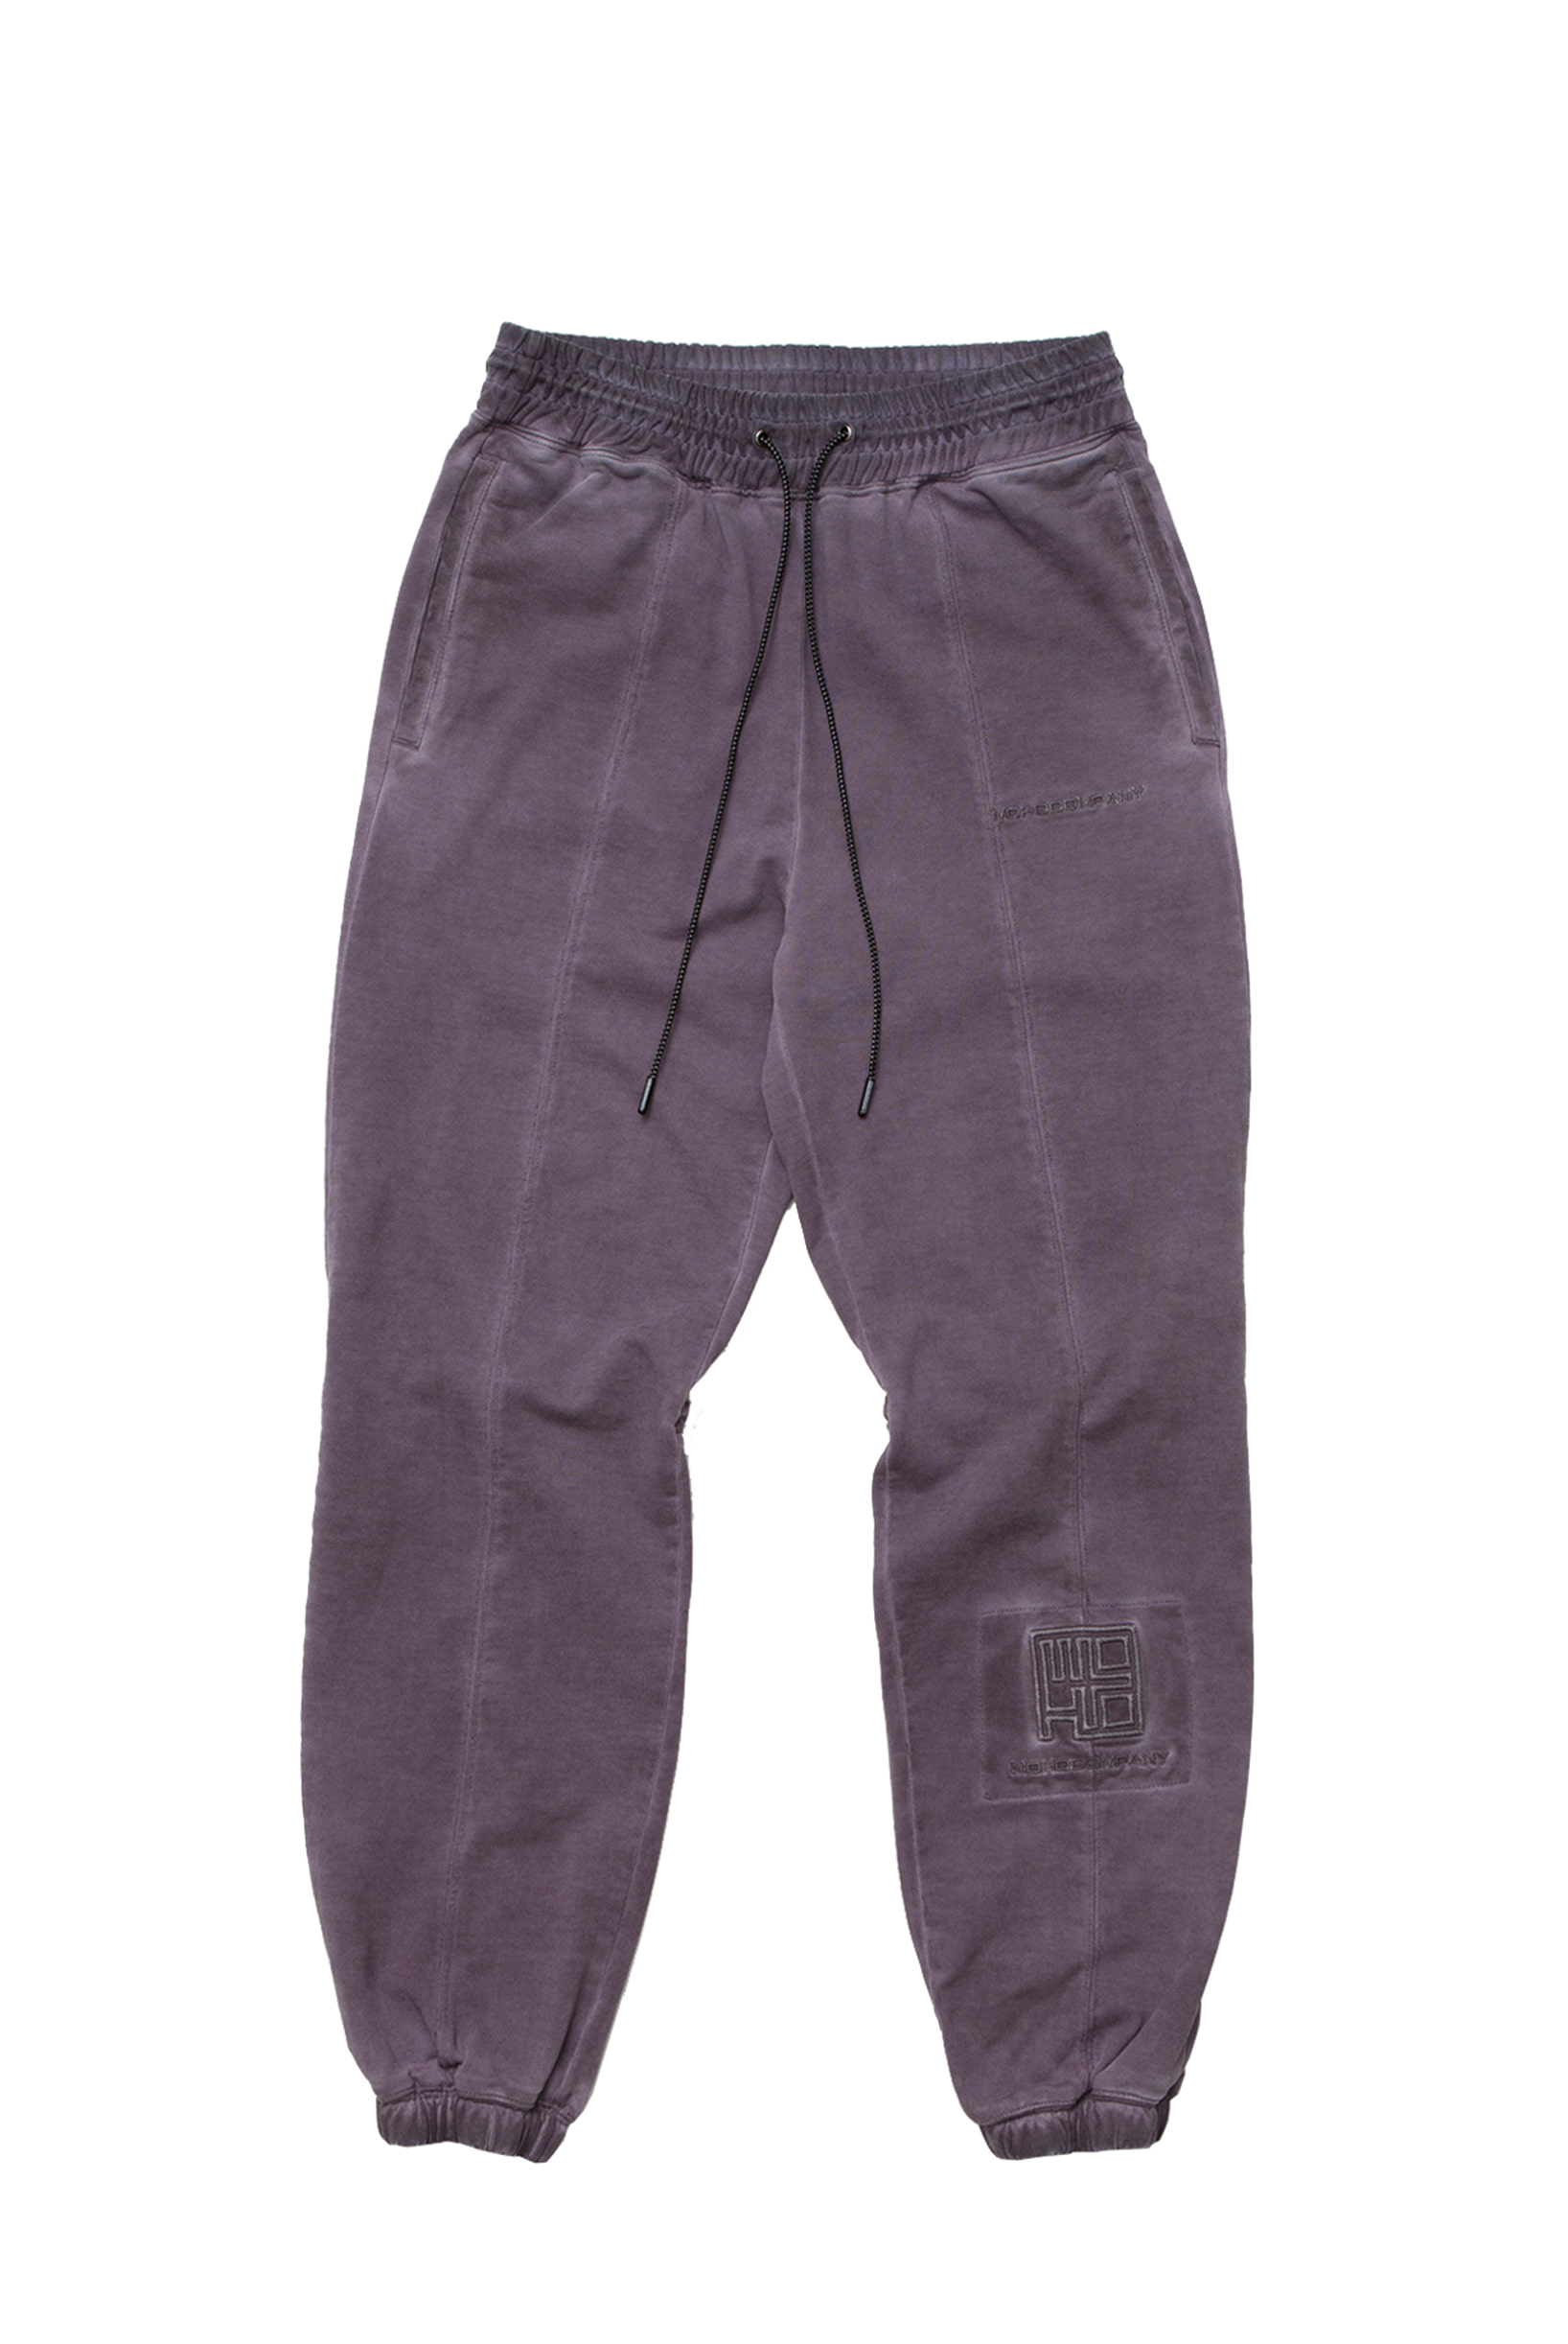 WASHED EFFECT LOUNGE PANTS (PURPLE)